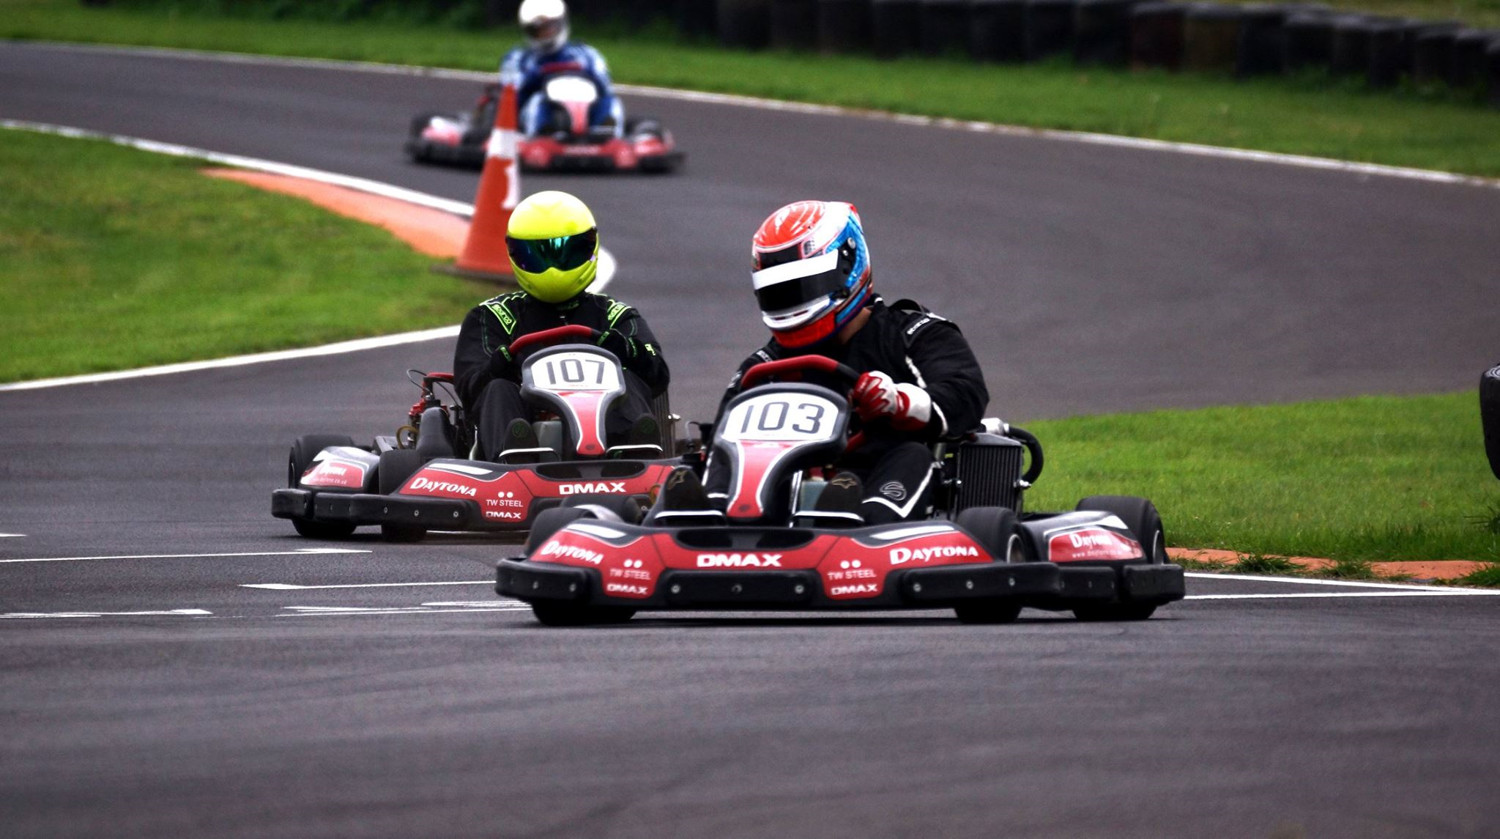 Tamworth Go Karting >> Daytona - Tamworth - GoKart Tracks UK